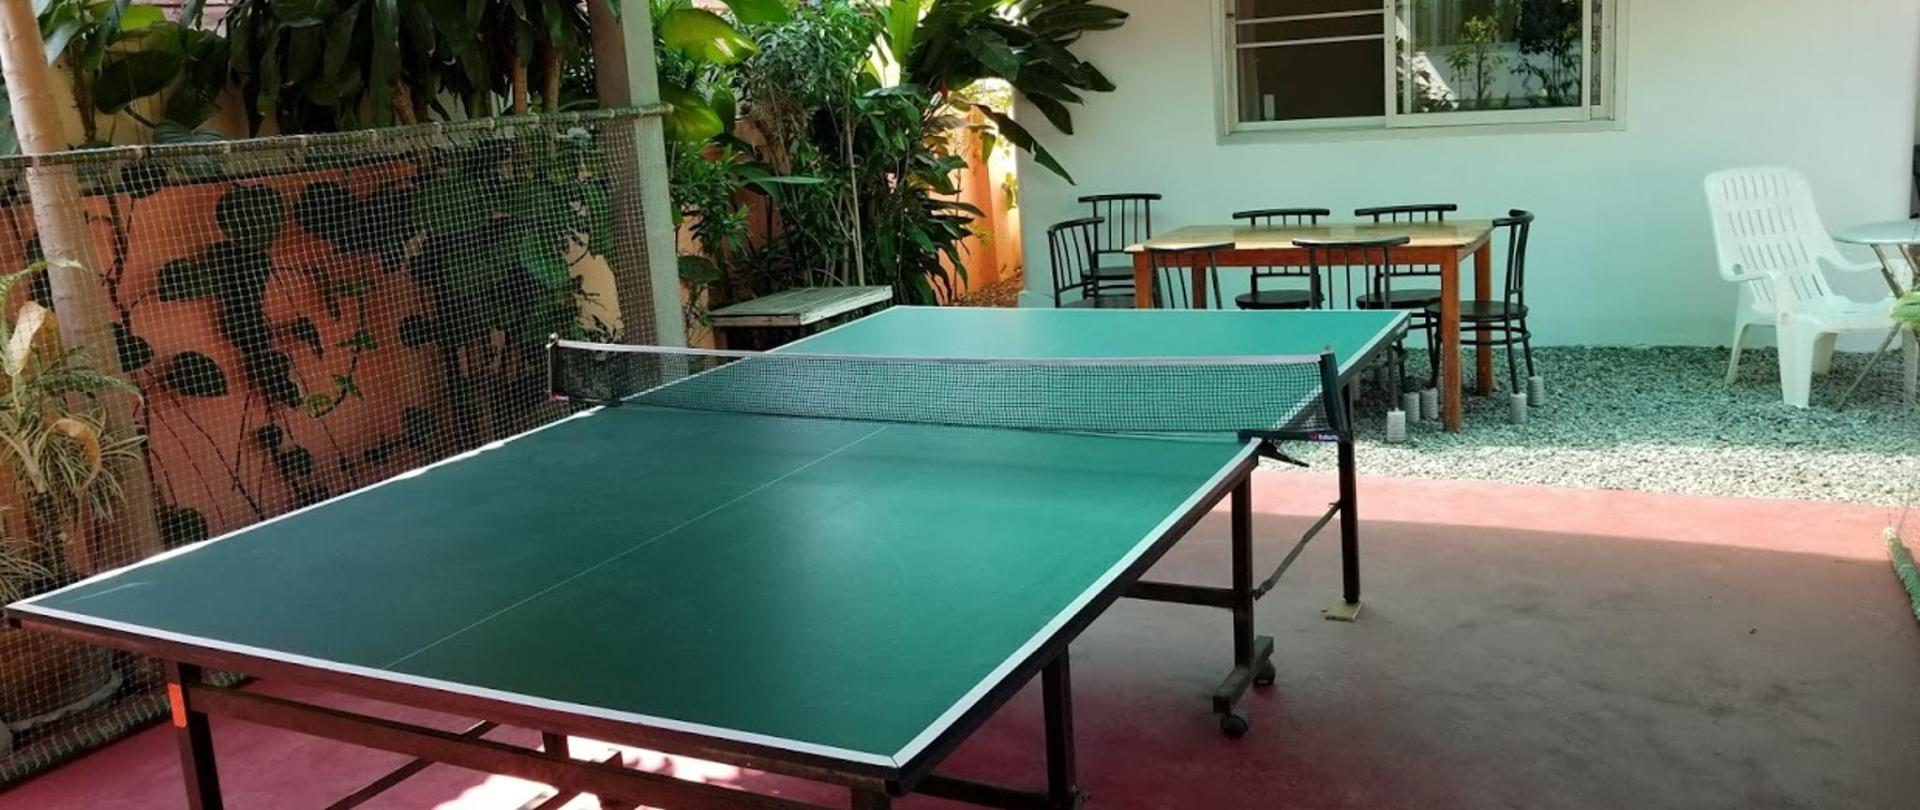 Ping Pong Table Bamboo.jpg